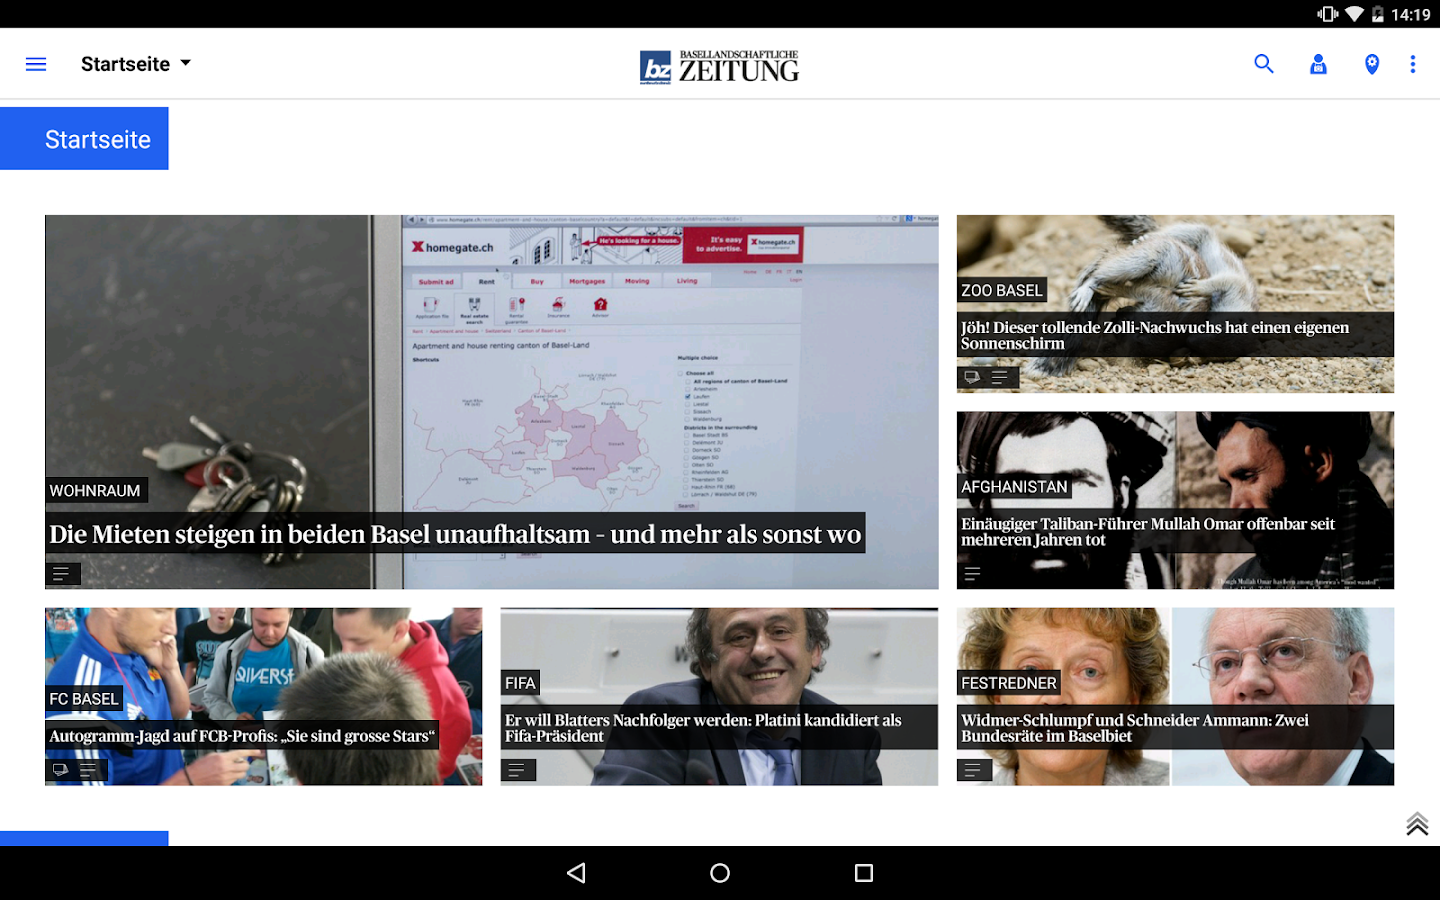 bz Basellandschaftliche News- screenshot